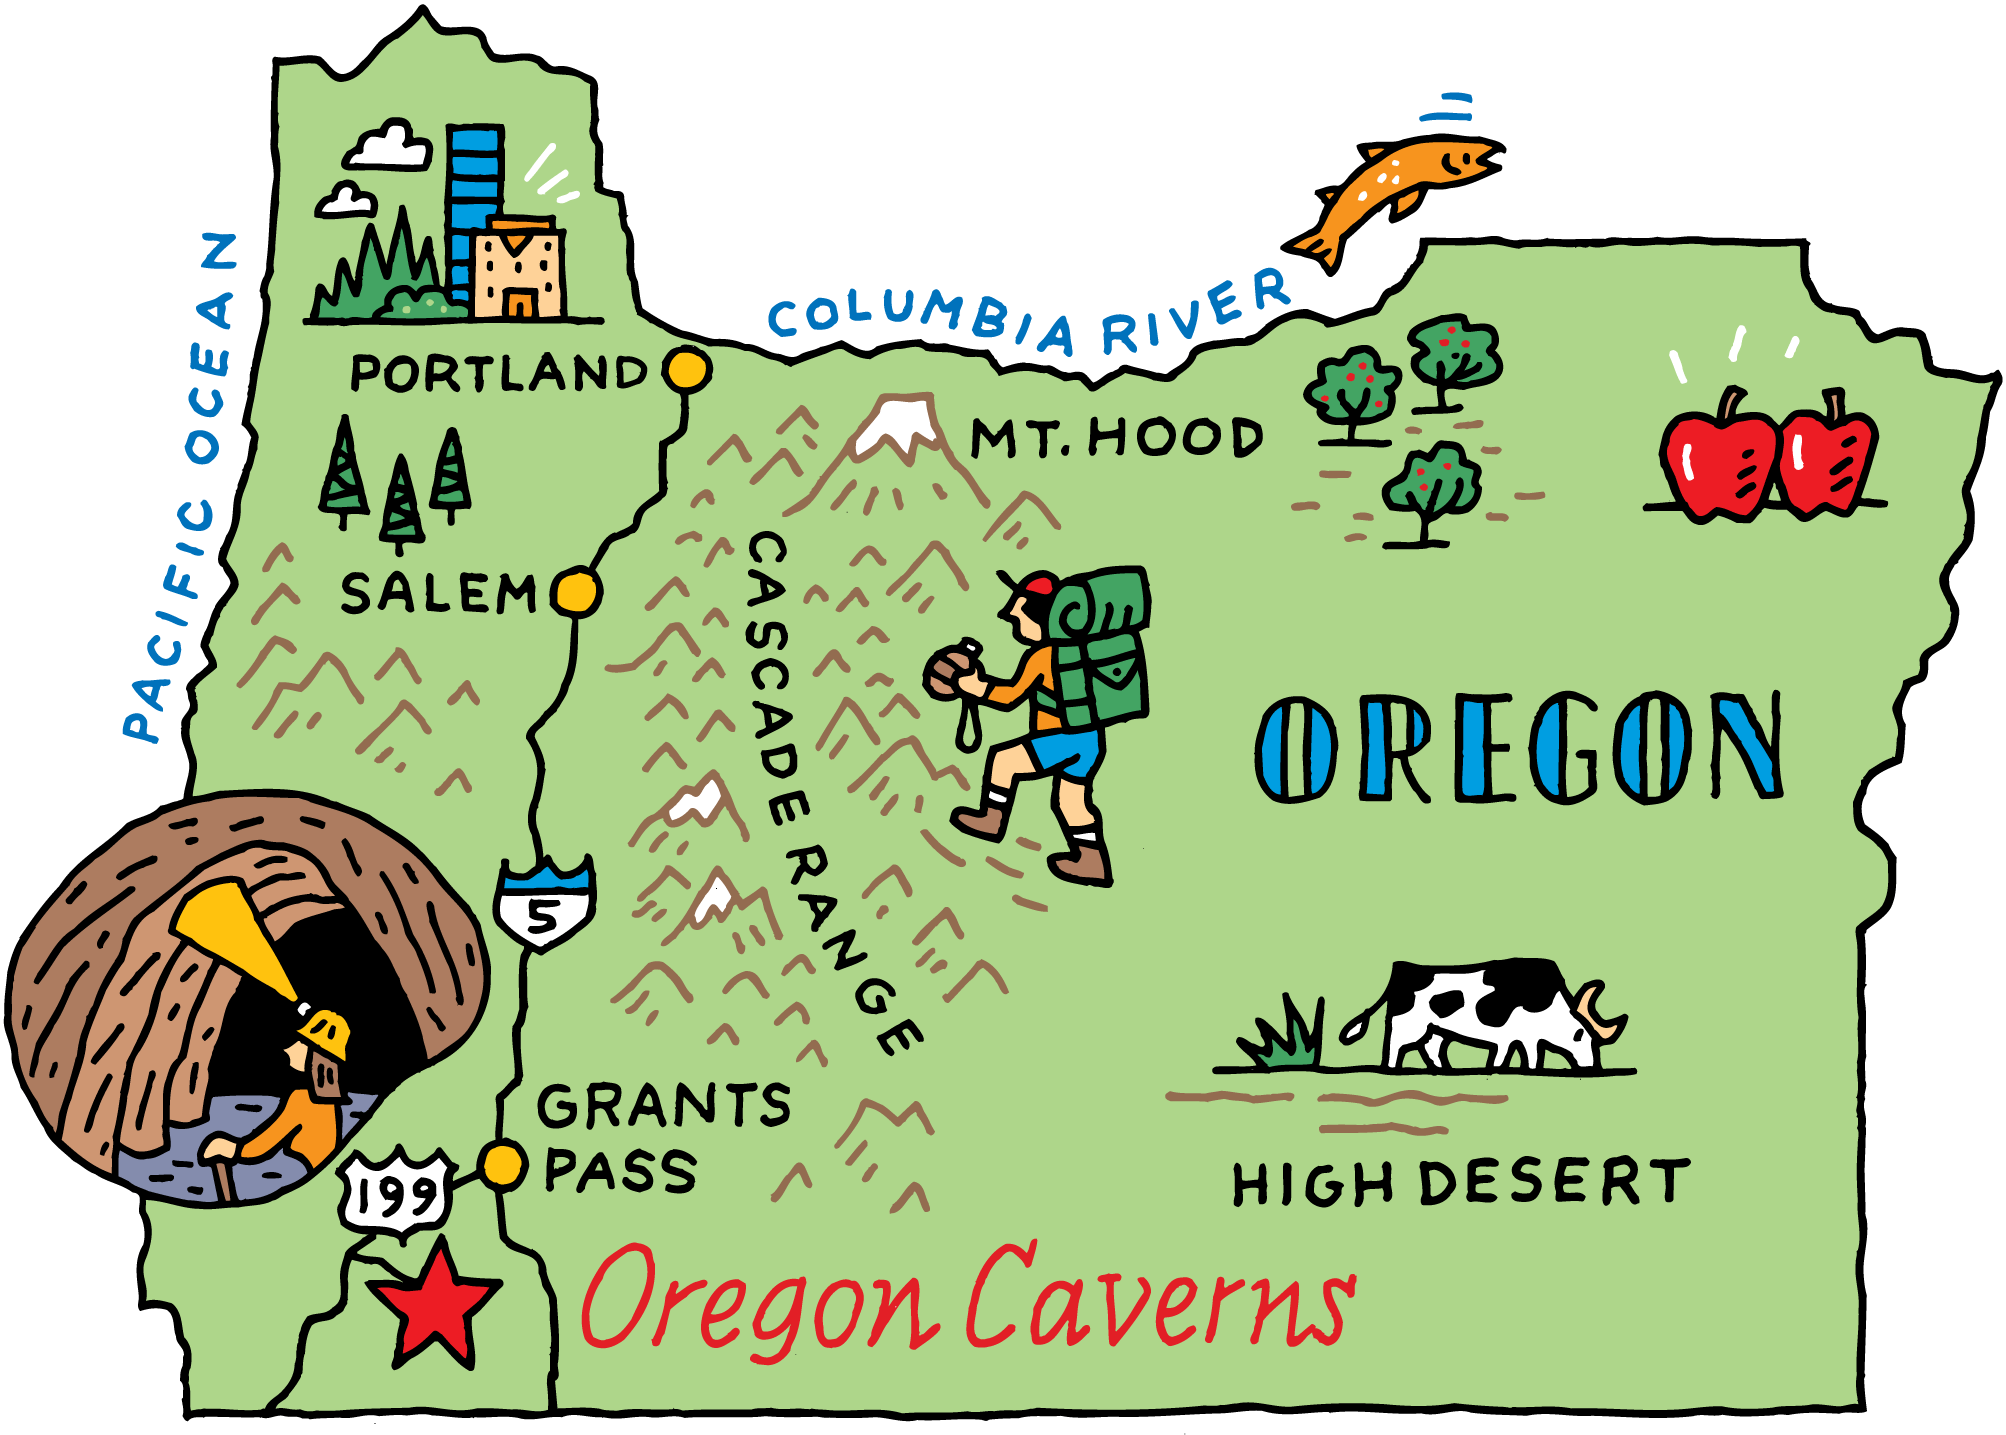 Oregon Caverns Map for Geico